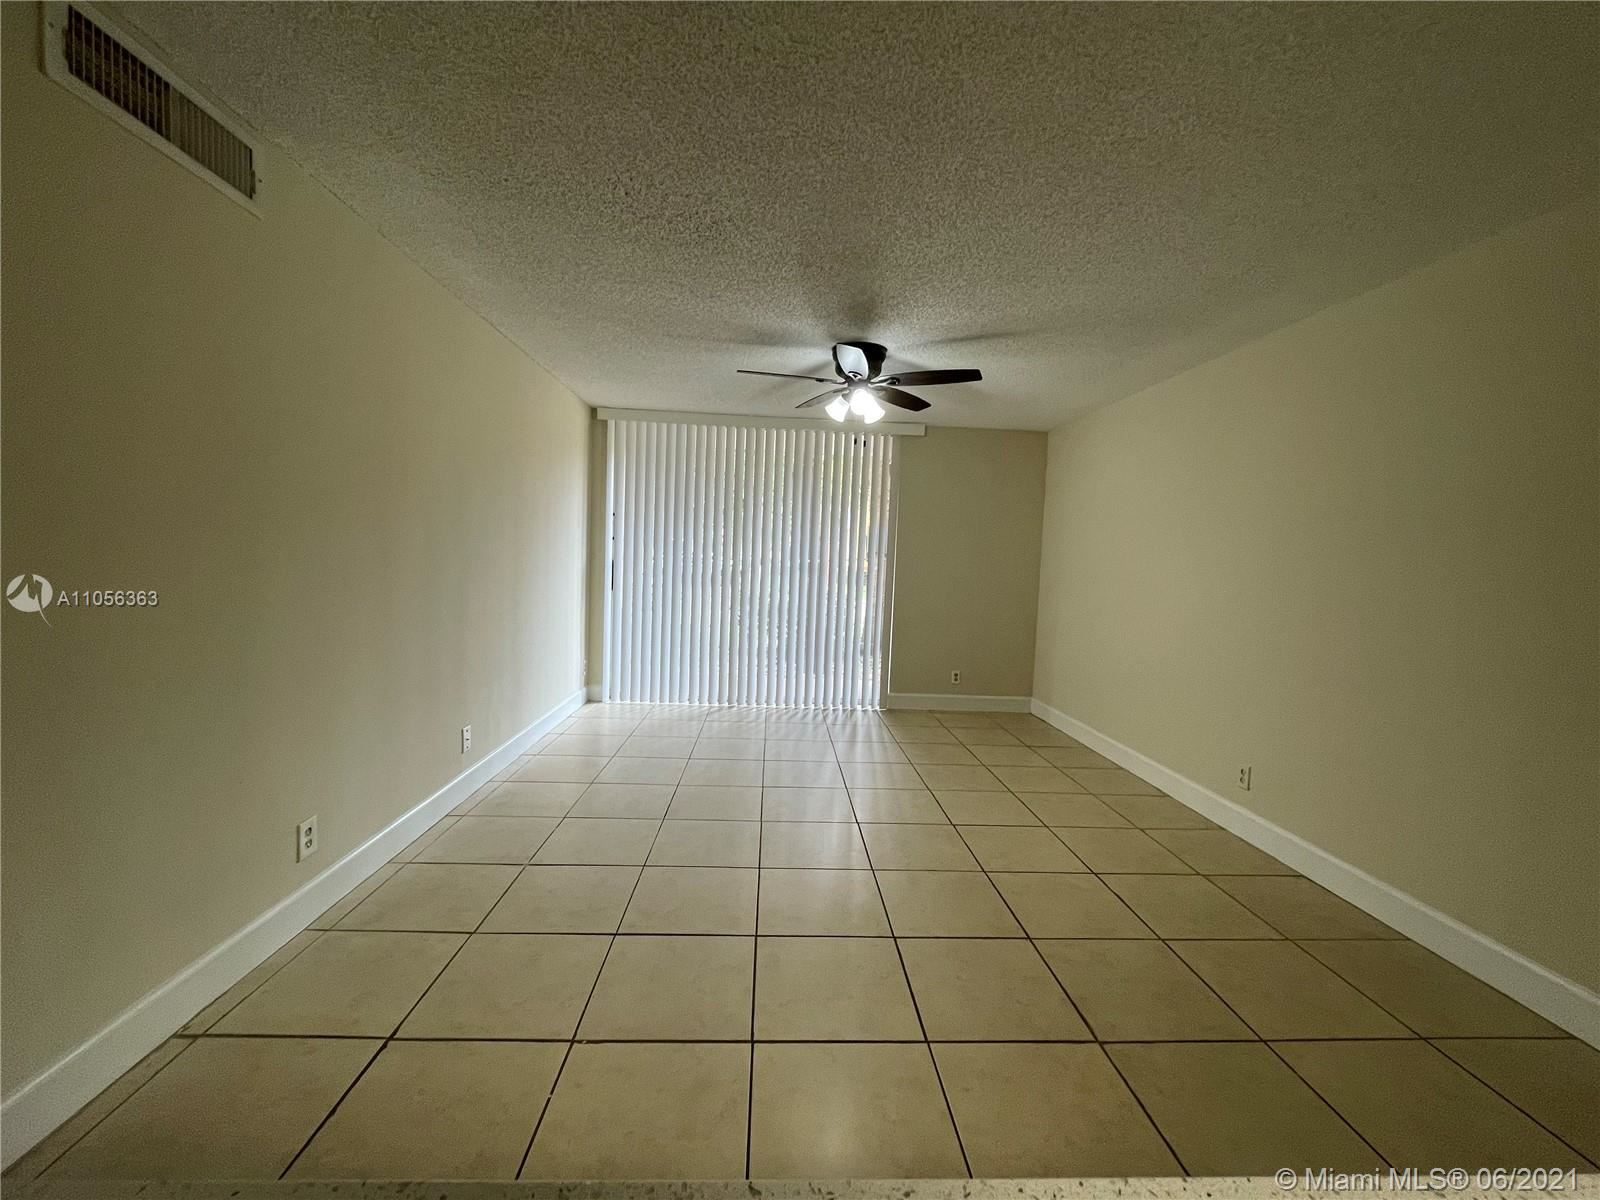 10757 Cleary Blvd #104, Plantation, FL 33324 - #: A11056363